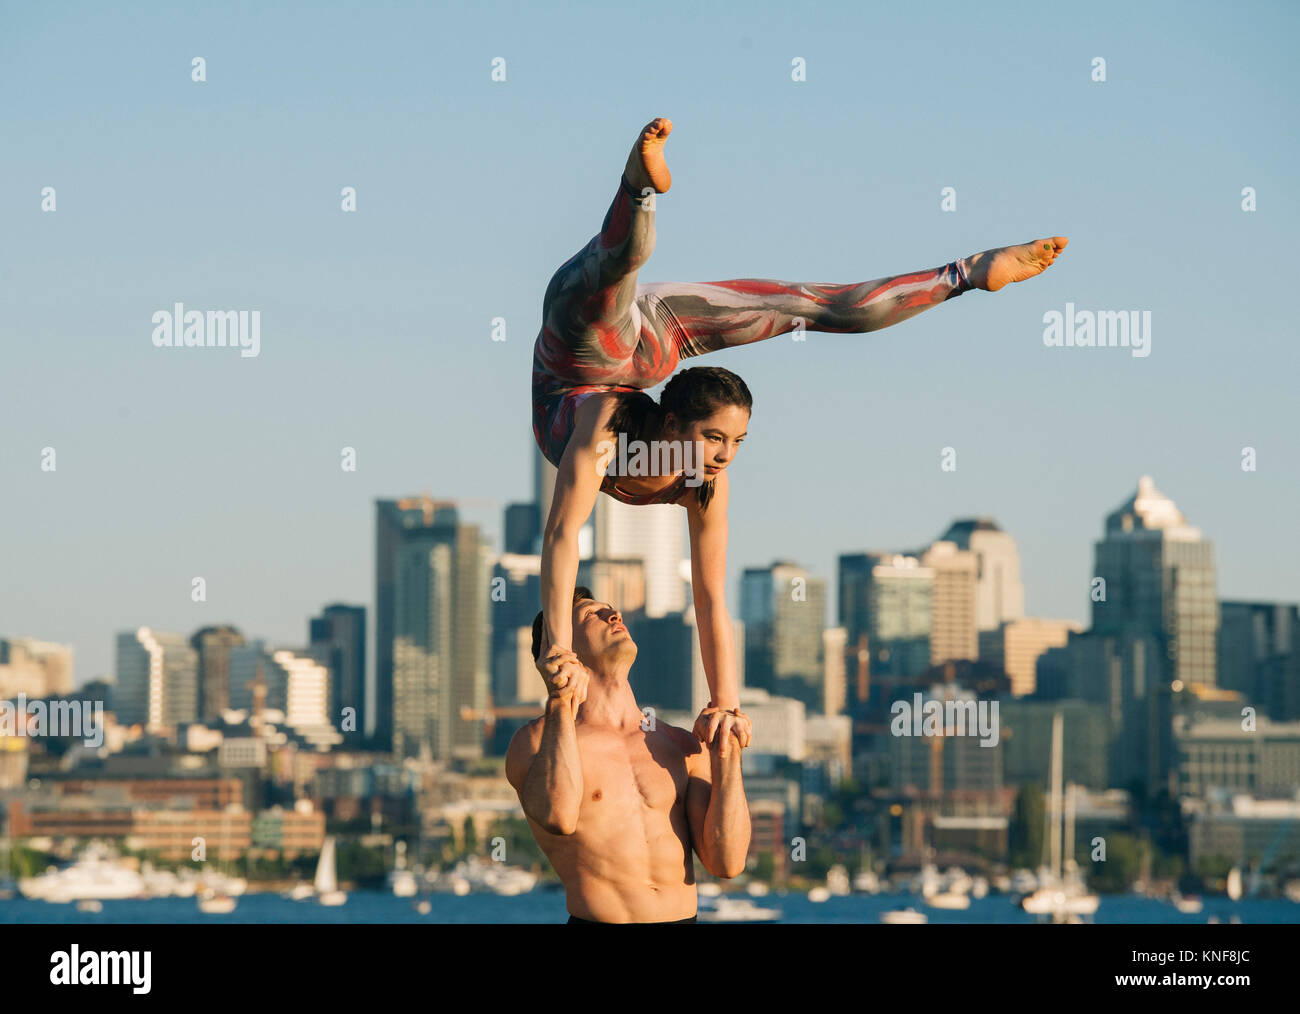 Teenage girl and young man, outdoors, woman balancing on man's hands in yoga position Stock Photo